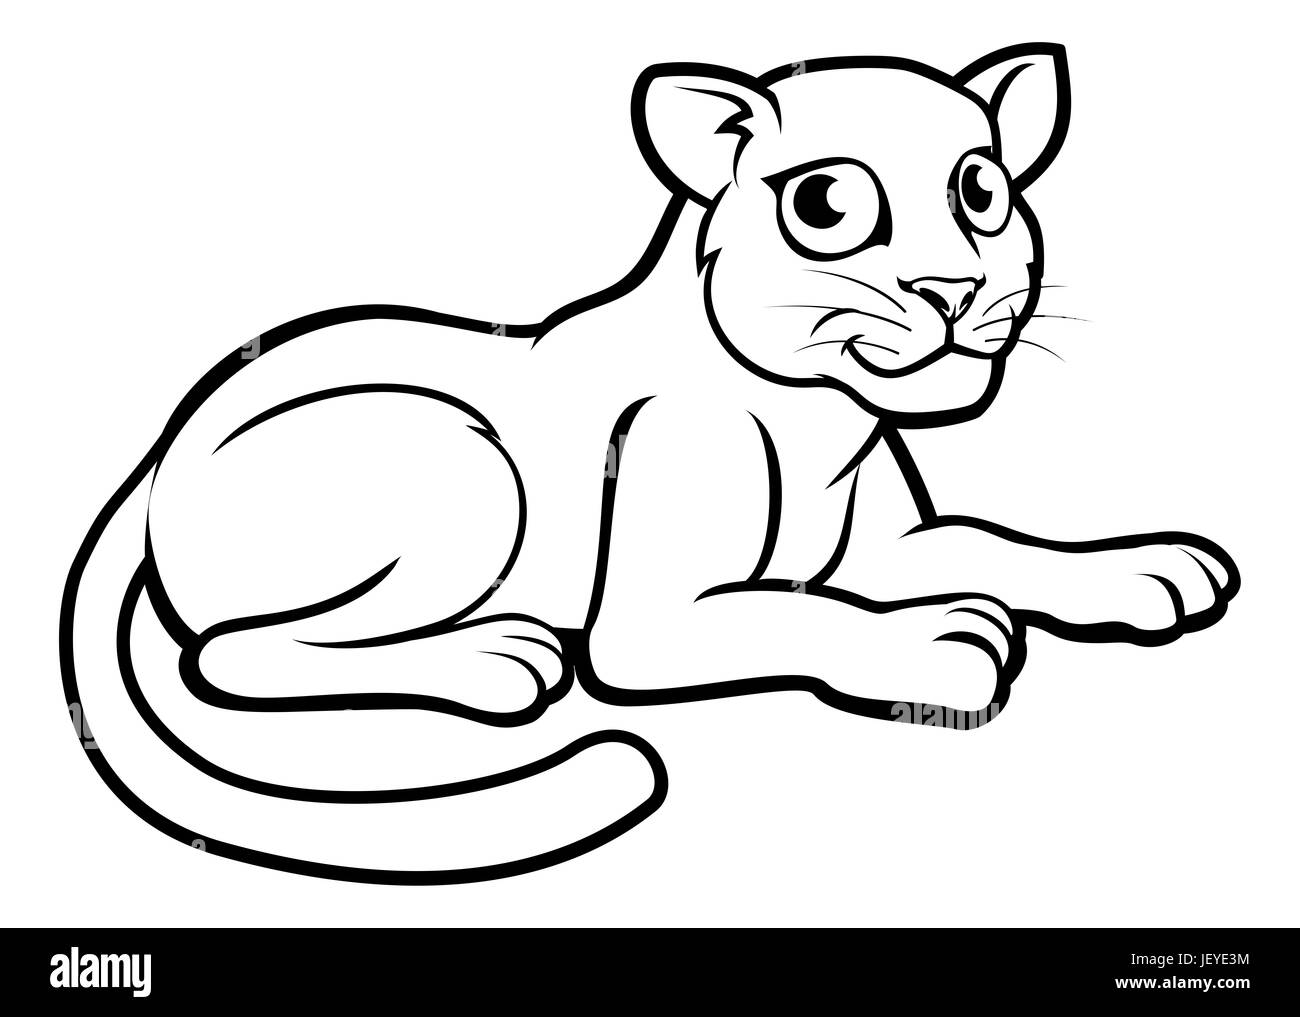 A leopard jaguar or panther cartoon character outline coloring